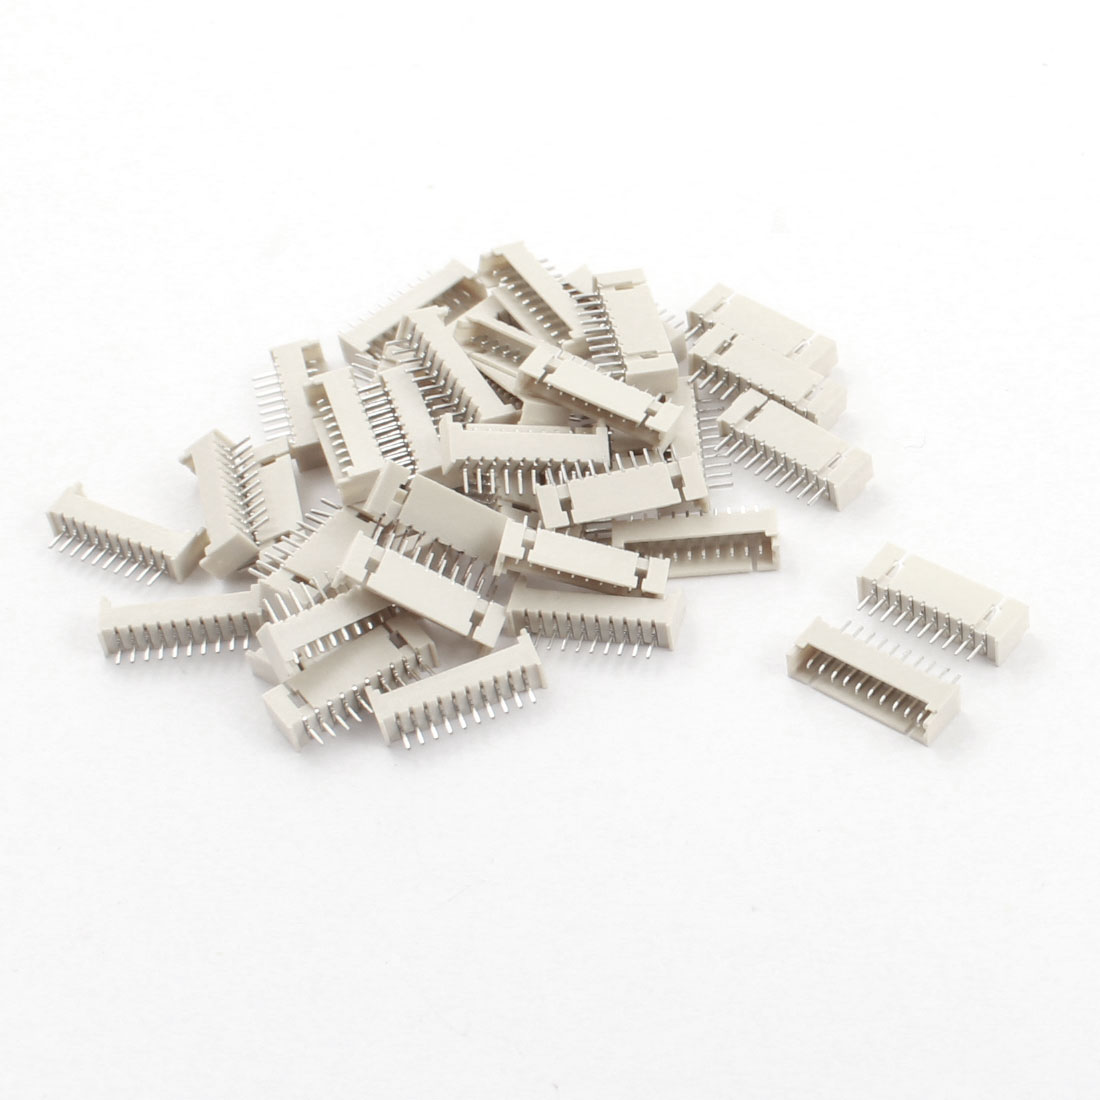 40Pcs 1.25mm Pitch Straight 10 Pins JST XH Male Connector Pin Header